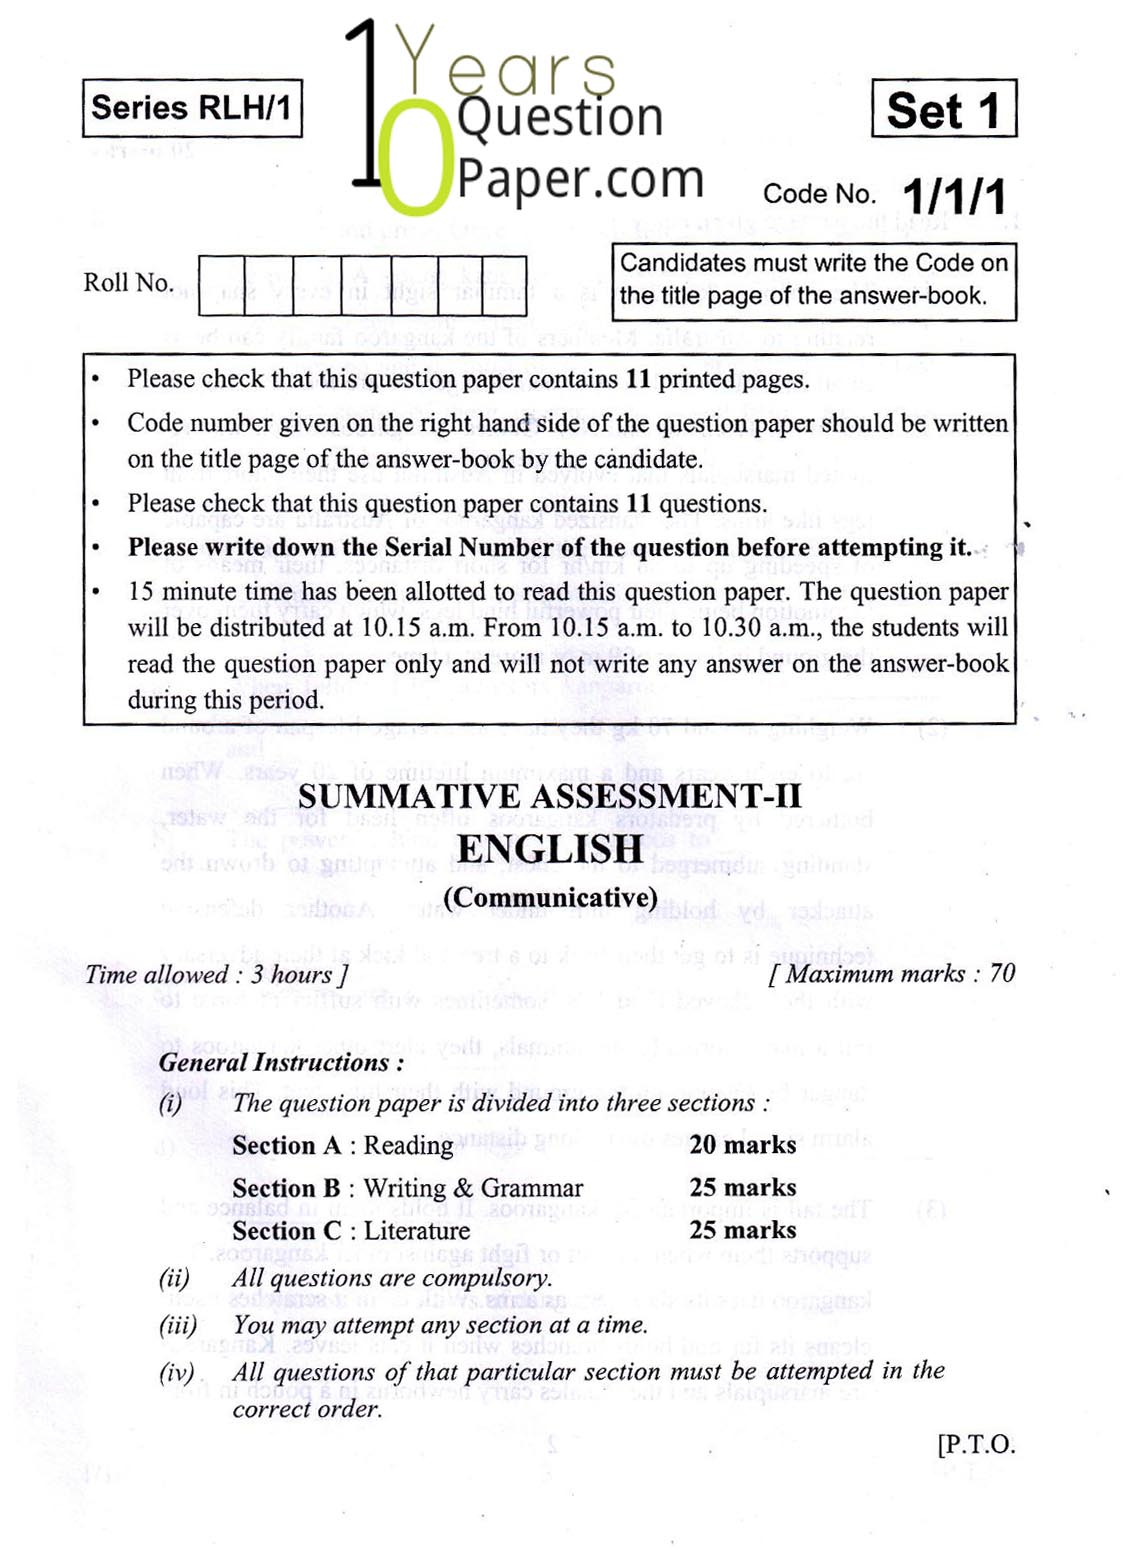 CBSE Class 10 English Communicative 2015 Question Paper